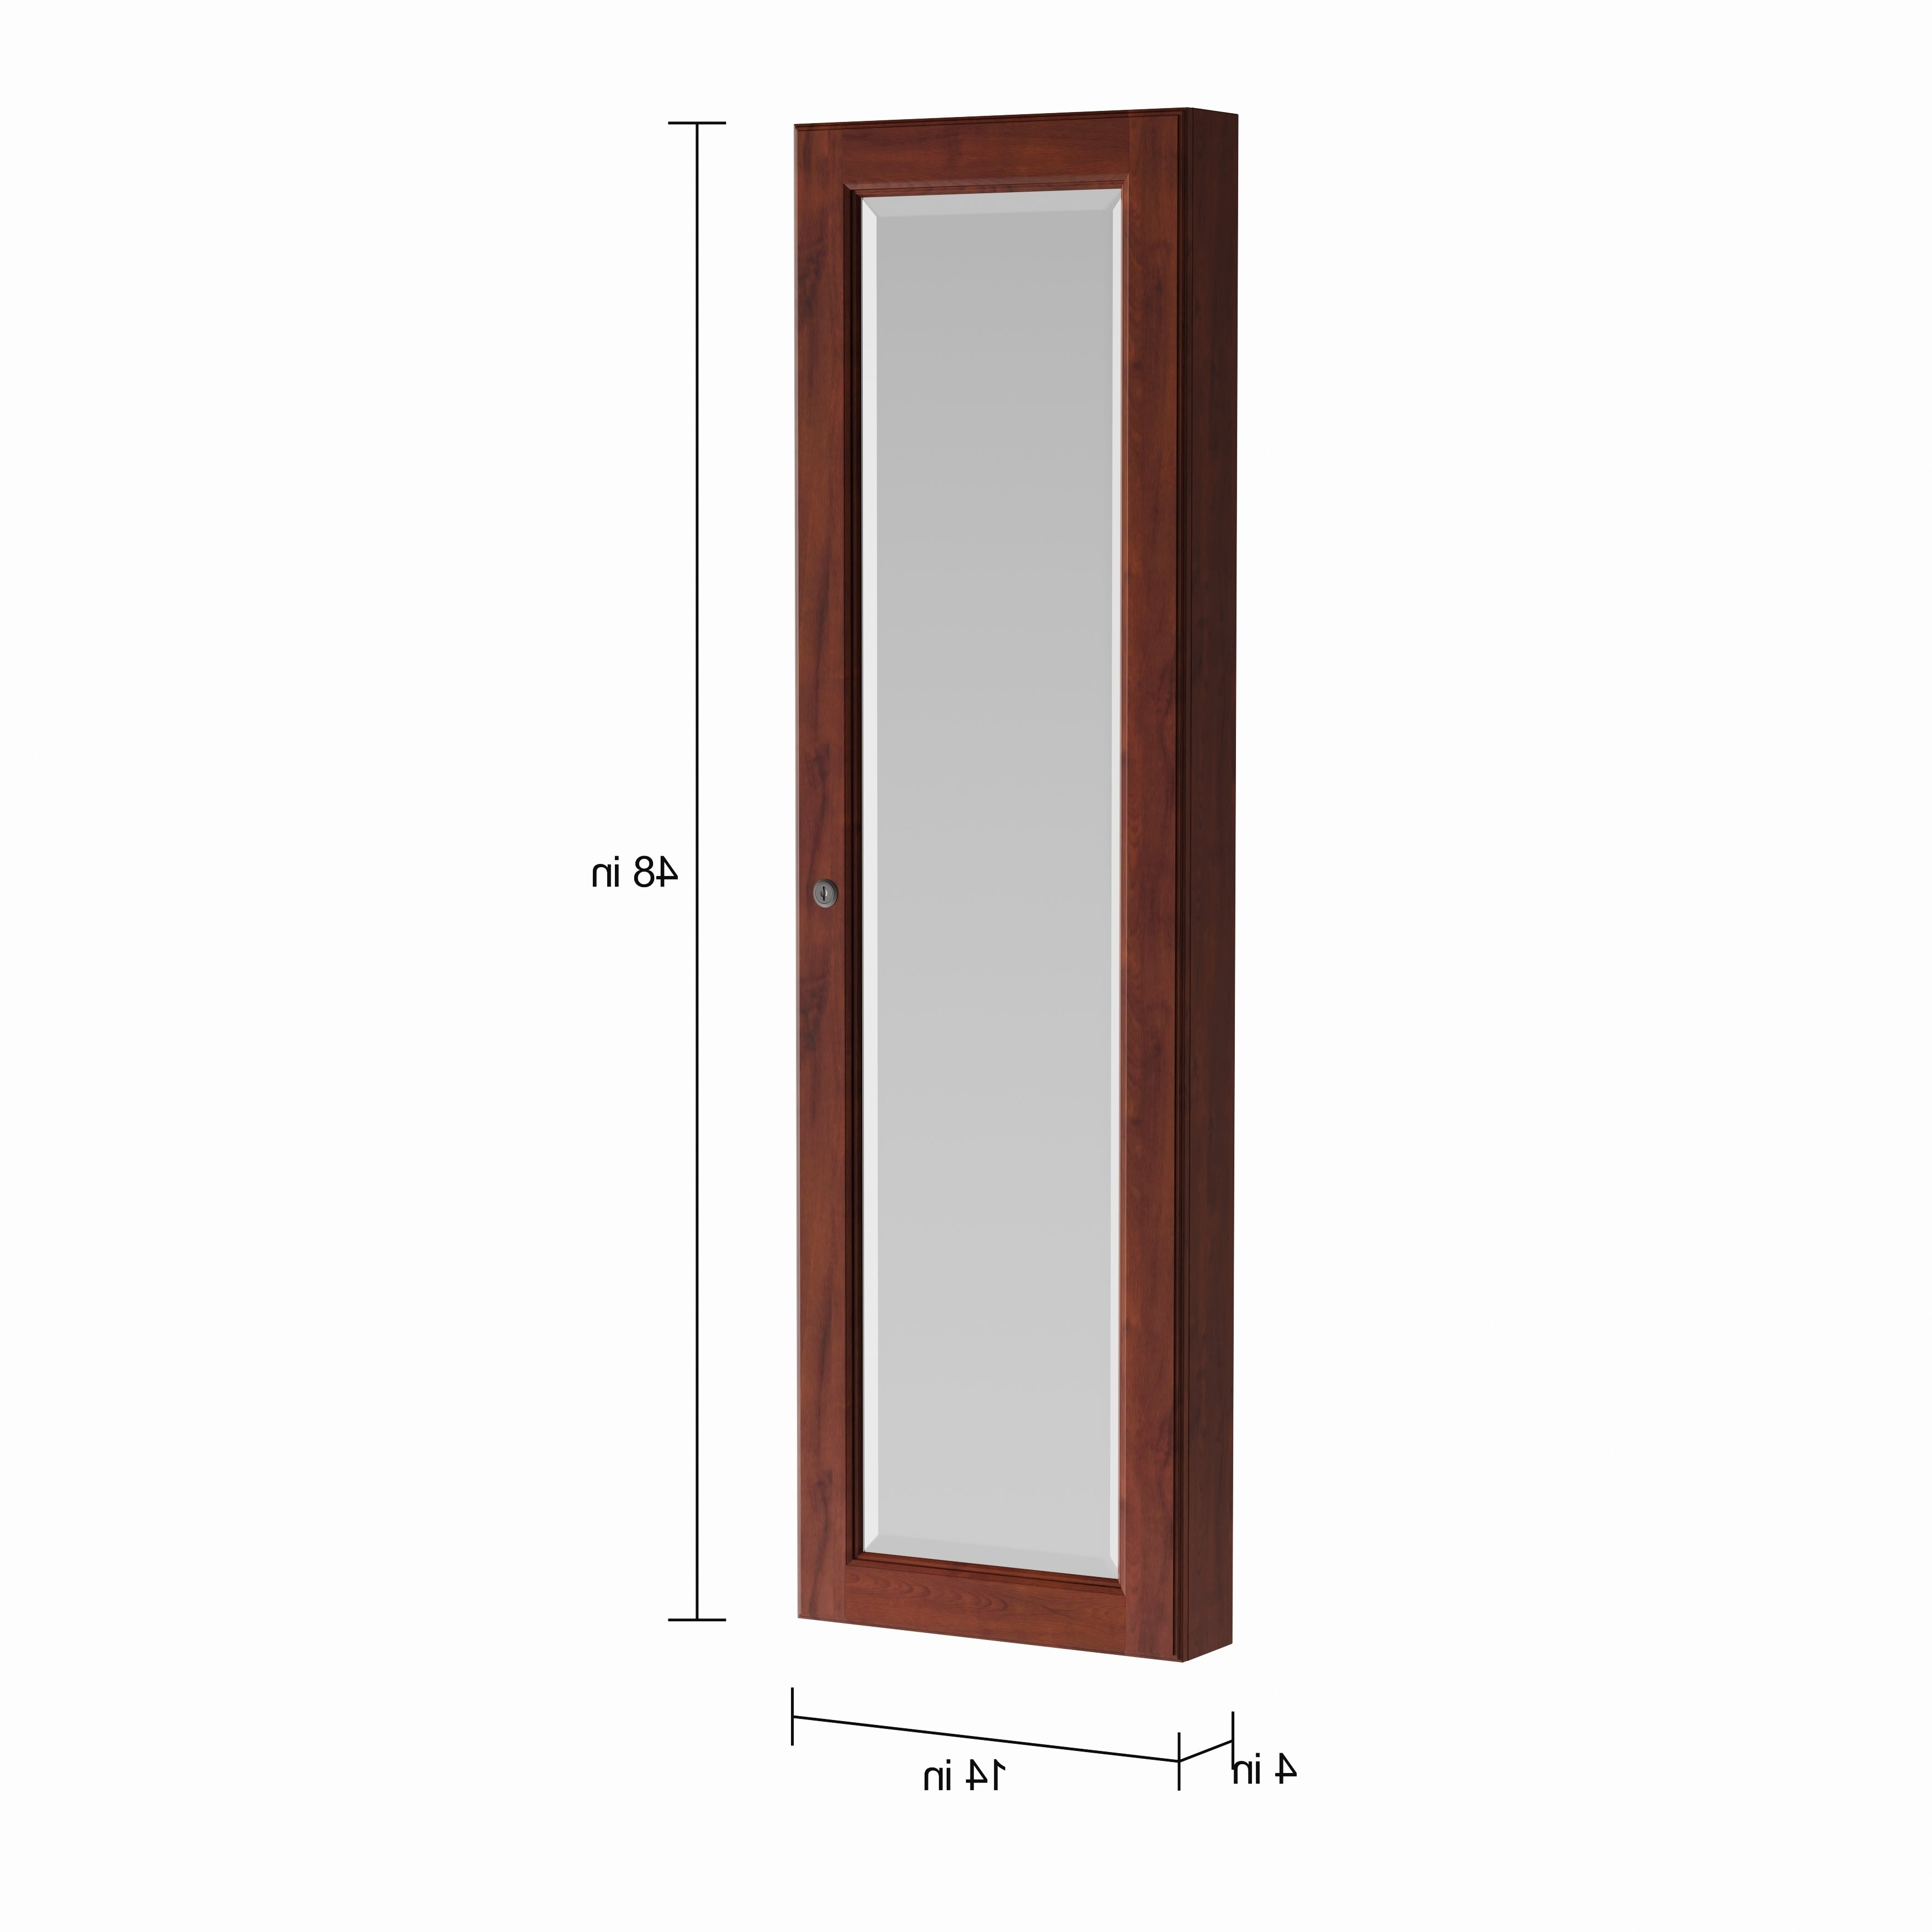 Widely Used Jewelry Wall Mirrors For Copper Grove Galax Wall Mount Burgundy Cherry Jewelry Mirror (View 19 of 20)